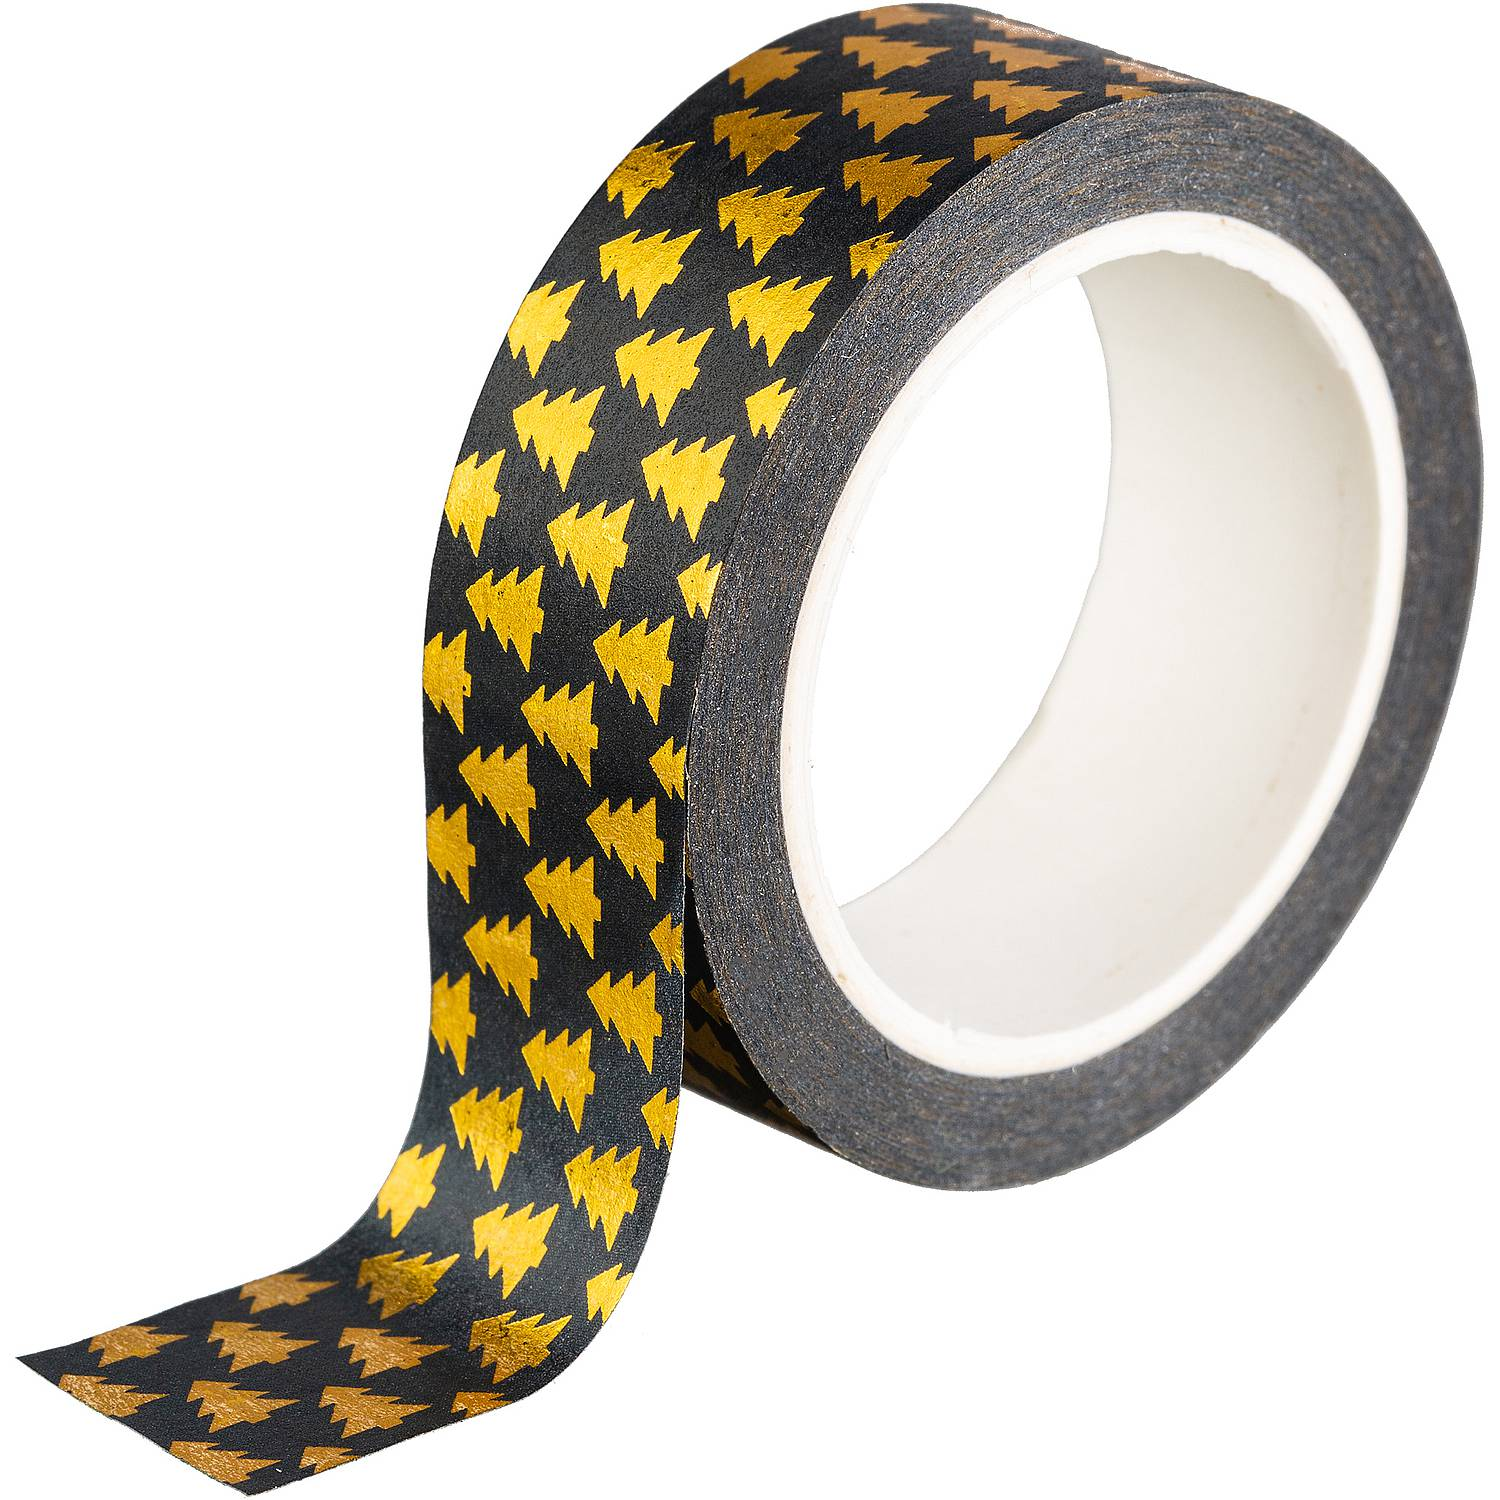 Washi Tape - Oh Tannenbaum, gold